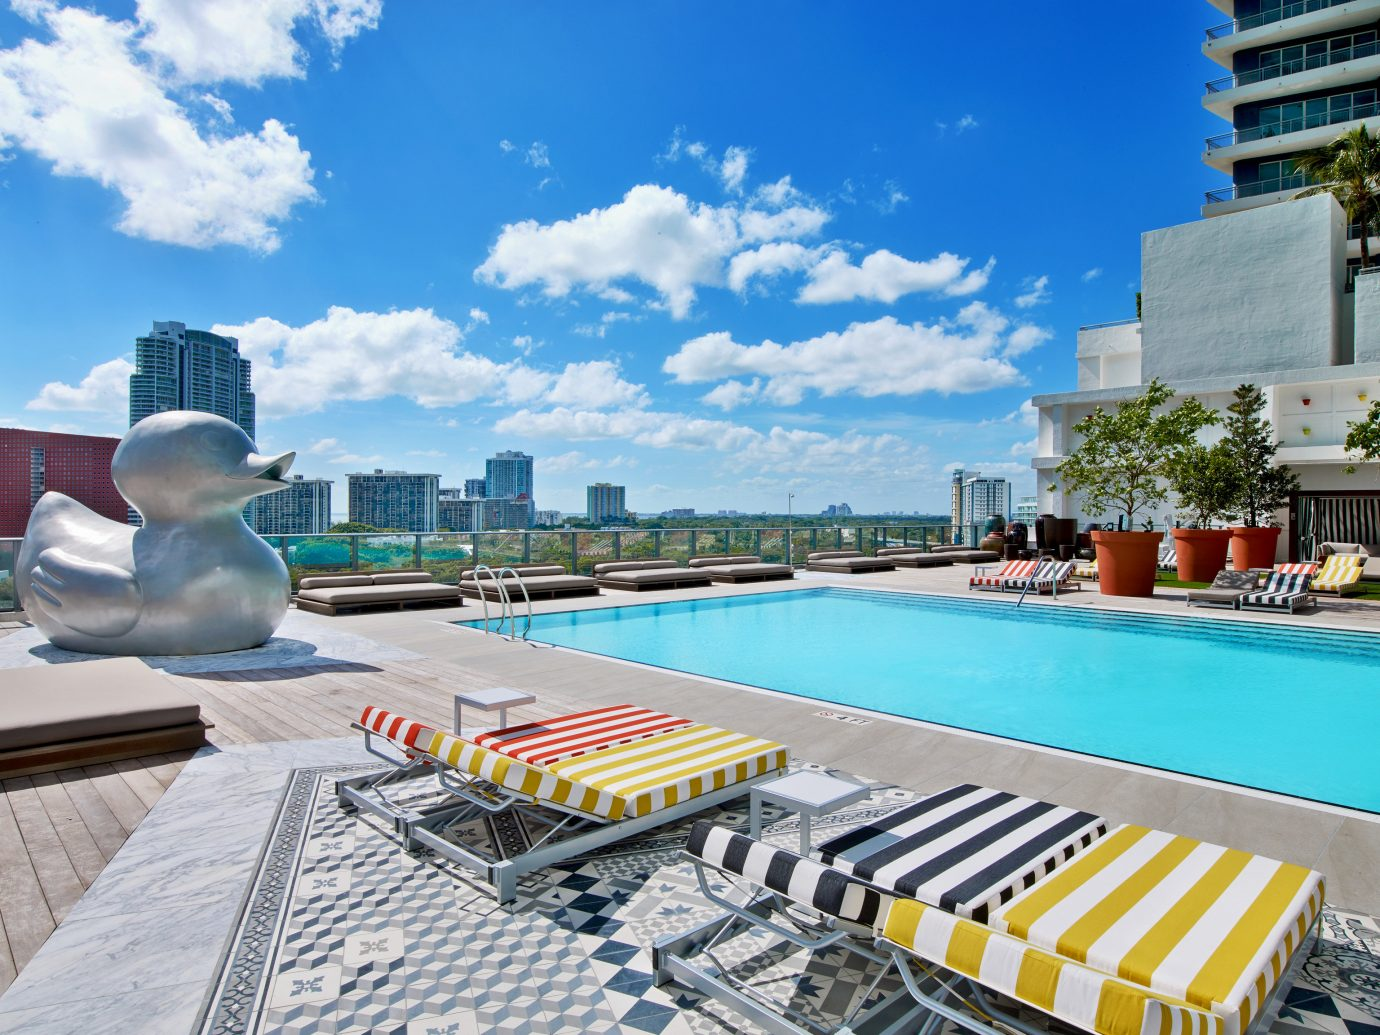 Hotels Trip Ideas Winter sky outdoor leisure swimming pool property condominium leisure centre Resort plaza Water park estate